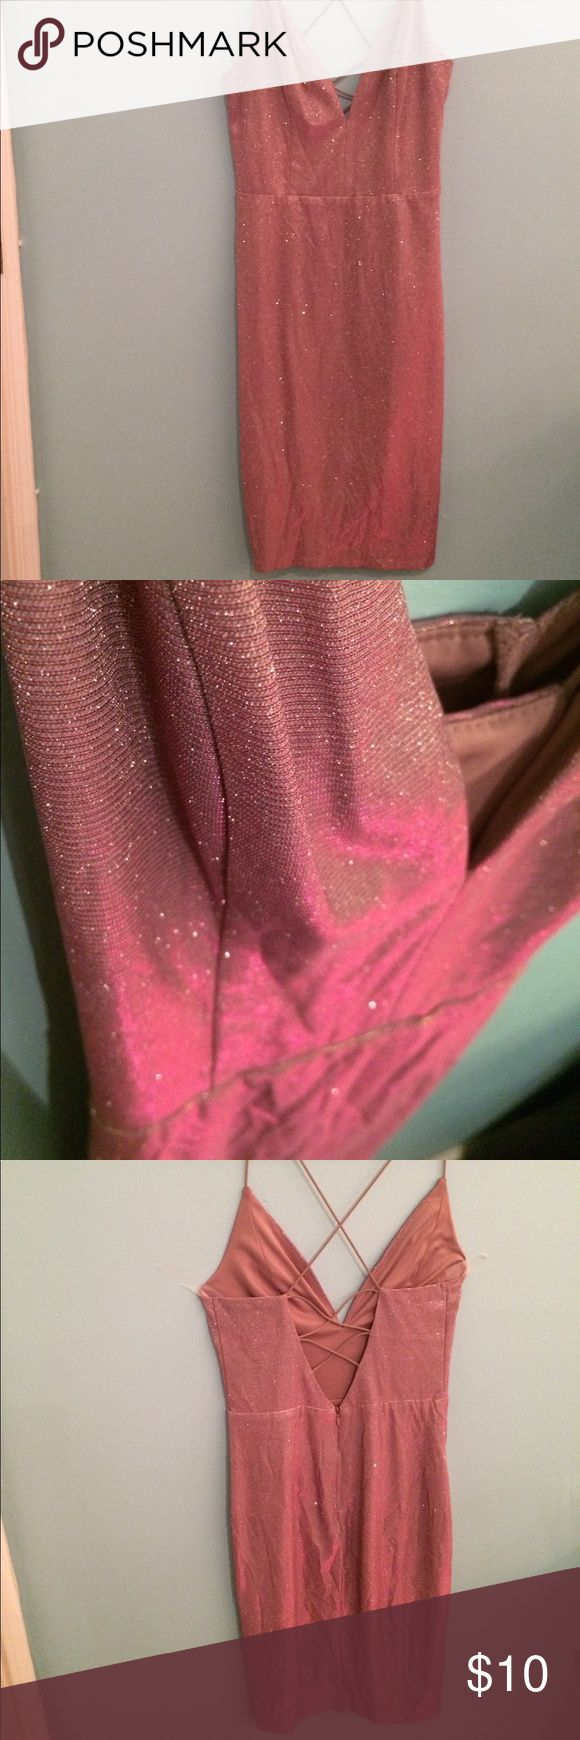 Iridescent pinkish/light purple Sparkly dress! Iridescent dress, has sparkles but they don't rub off! Light weight material, Form to the body, laces up in the back and cuts down in the front. Very pretty! Worn only once. Charlotte  Ruse, beautiful find. Short and fun party dress! Charlotte Russe Dresses Mini